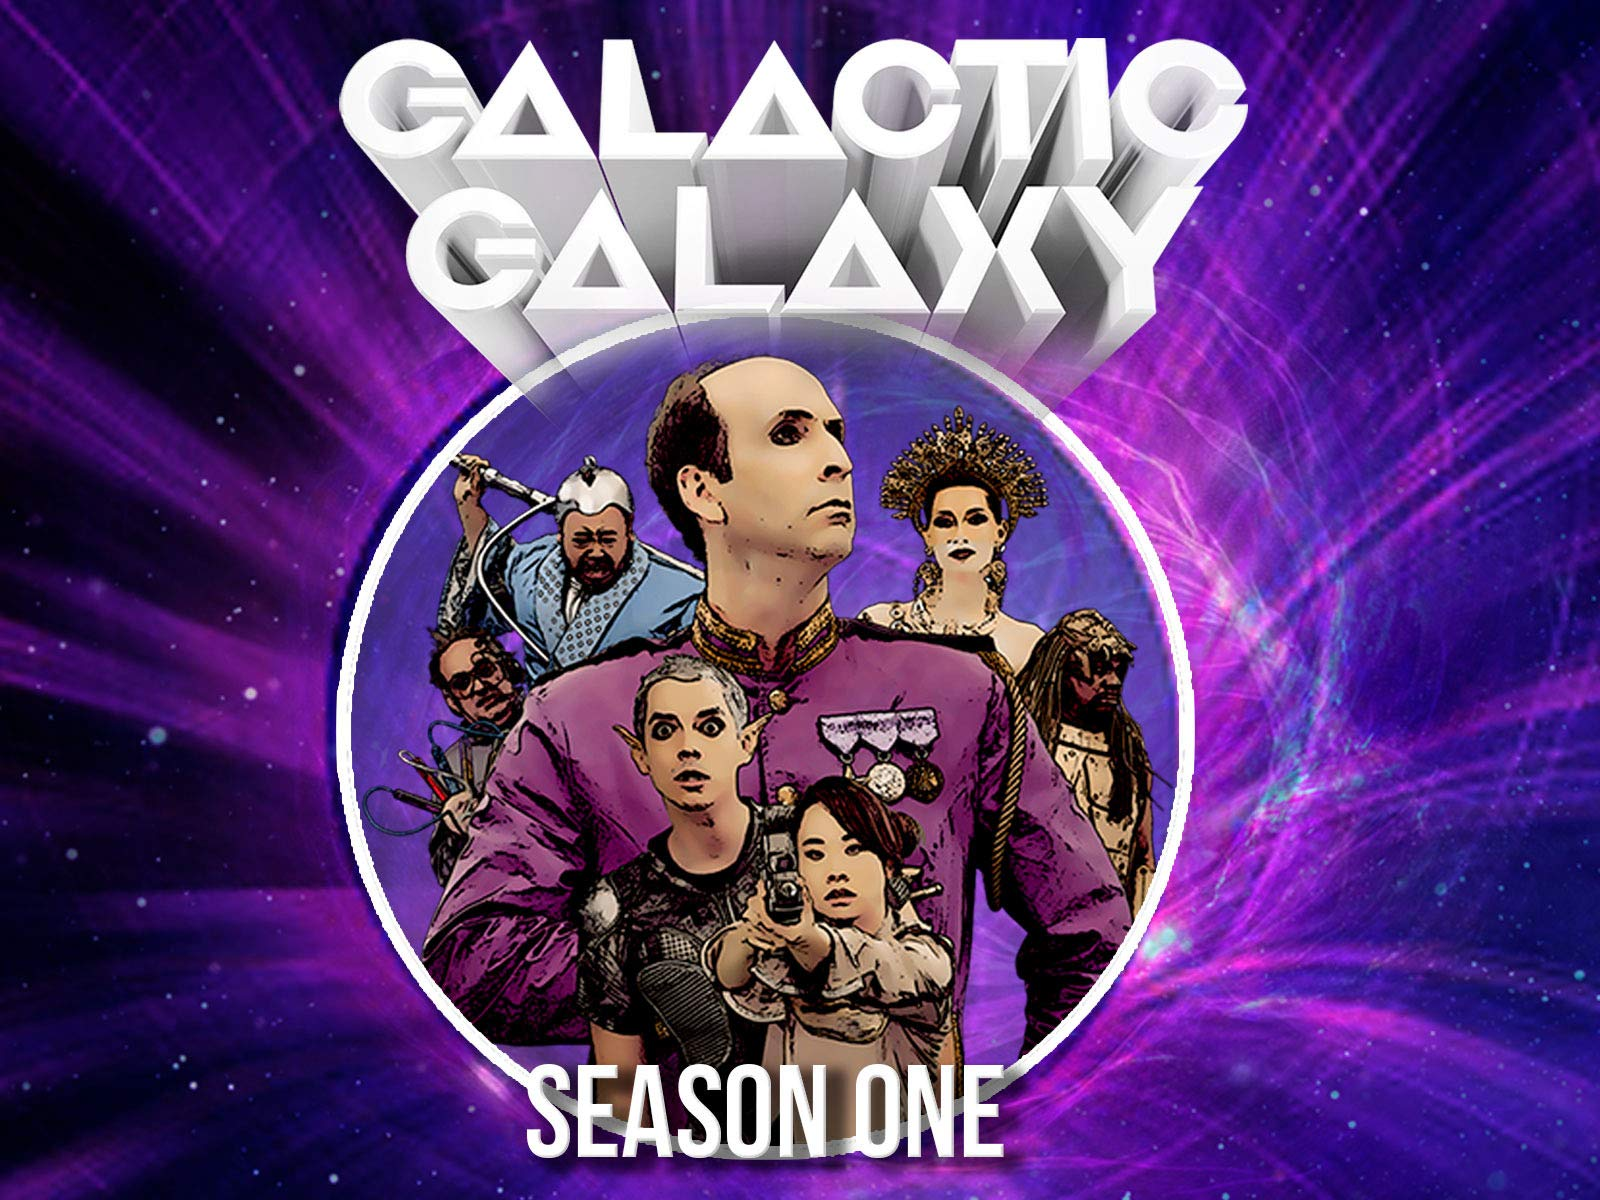 Galactic Galaxy - Season 1